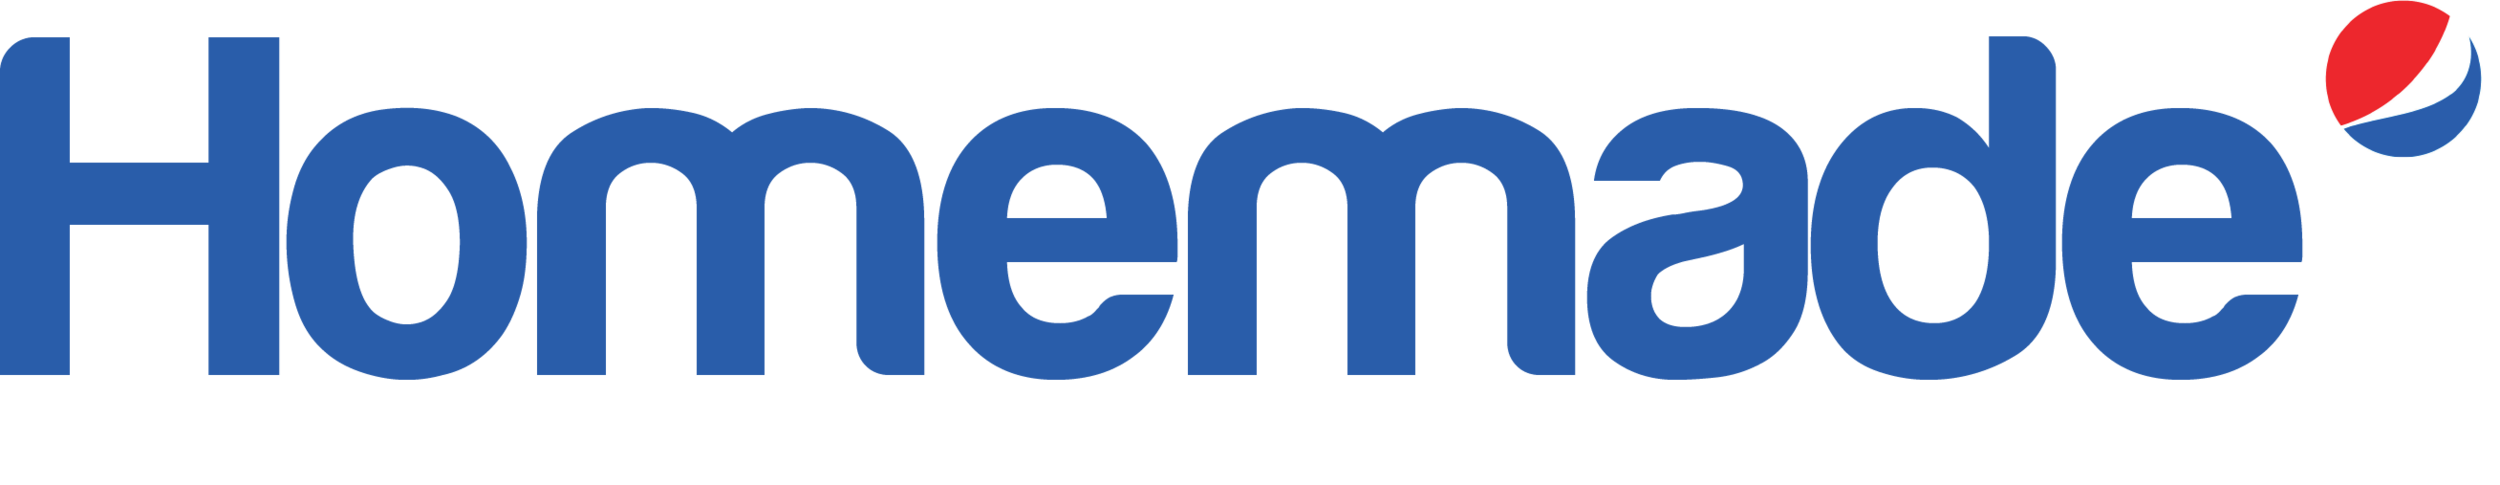 Homemade by Pepsi logo. In this new logo rendition, the Pepsi logo is smaller, to draw less attention to the brand, but to see where the collection stems from.